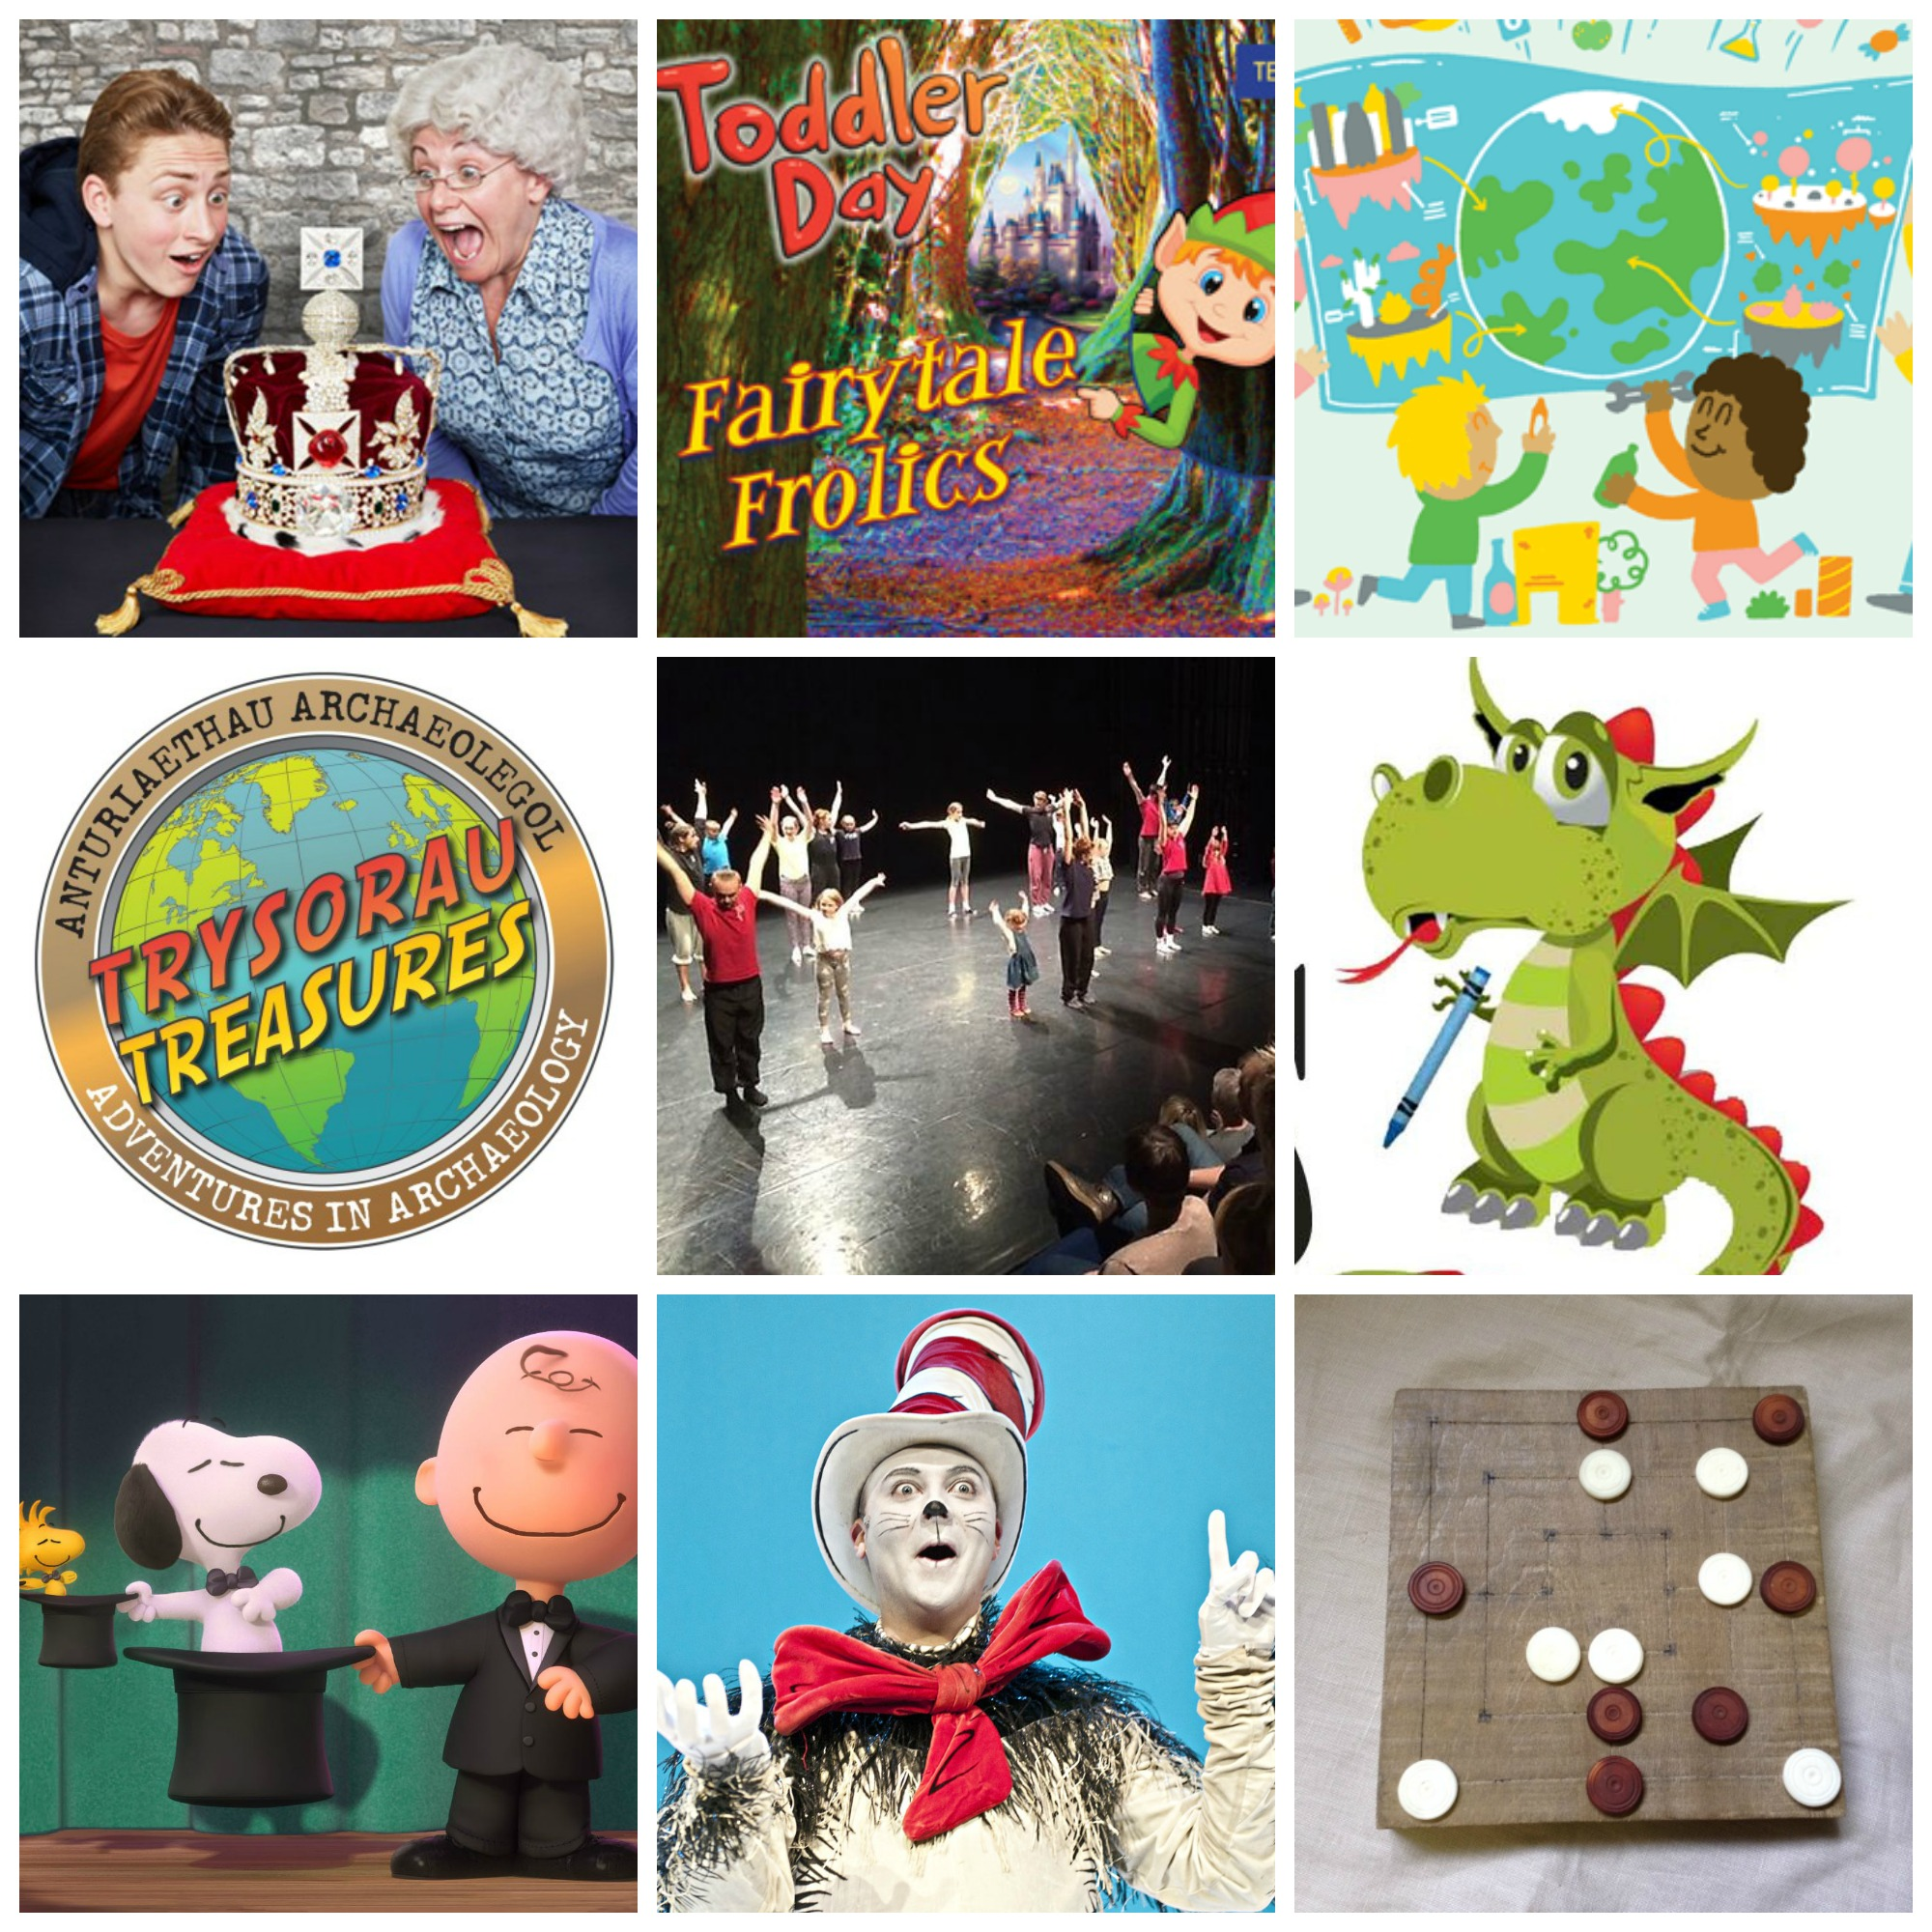 Top row from left: Gangsta Granny at the New Theatre; Toddler Day at Techniquest, Build a World at WMC; Middle row from left, Treasures at National Museum Cardiff, National Dance Company Wales Family Interactive Matinee at Sherman Cymru, Dinky Dragons at the Cardiff Story; Bottom row from left, Snoopy and Charlie Brown Movie at Chapter Arts Centre, The Cat In The Hat at the New Theatre, Medieval Games at St Fagans National History Museum